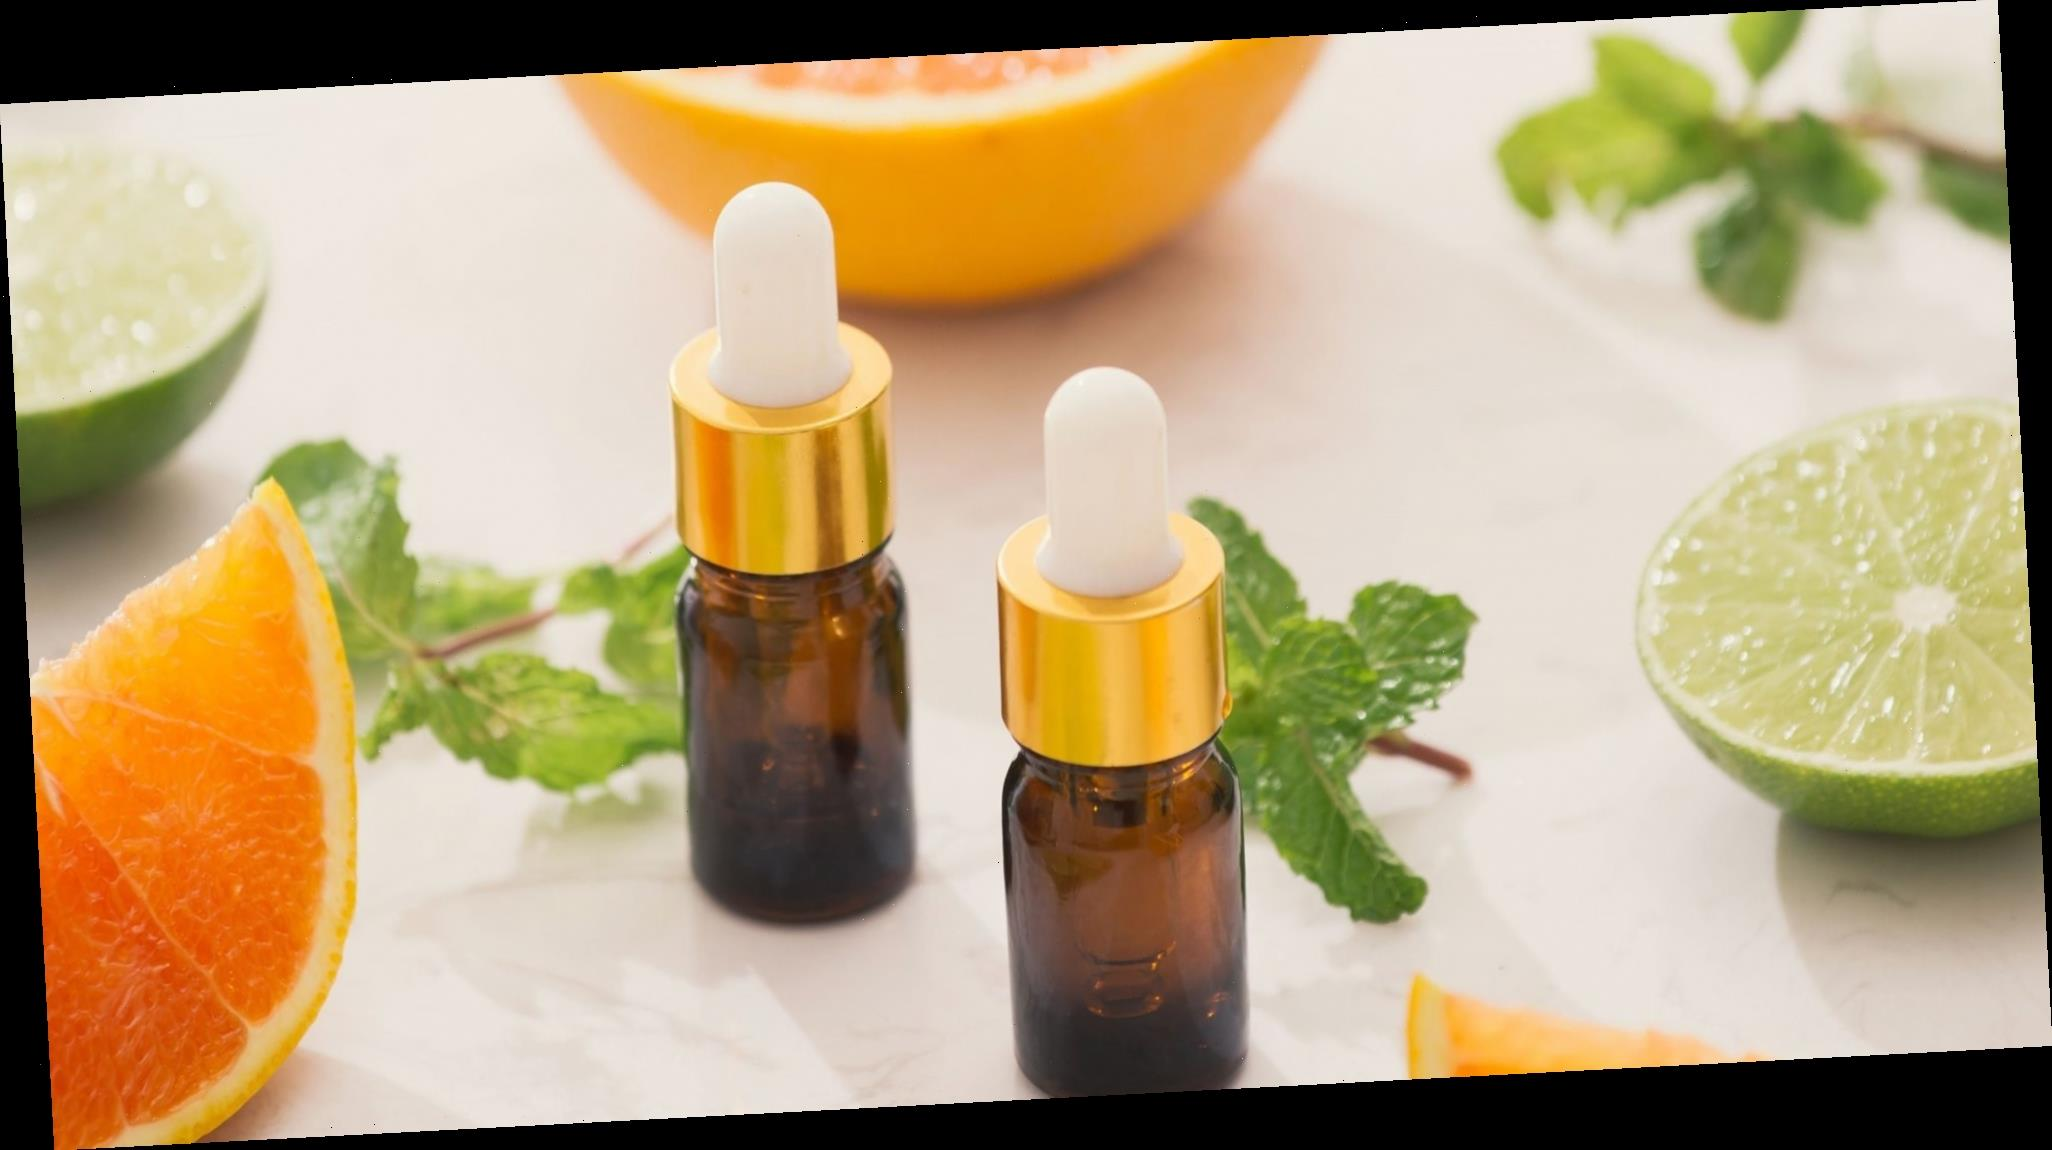 This $7 Vitamin C Serum Is So Good, It Gained 7,000 Five-Star Ratings in Just Three Months